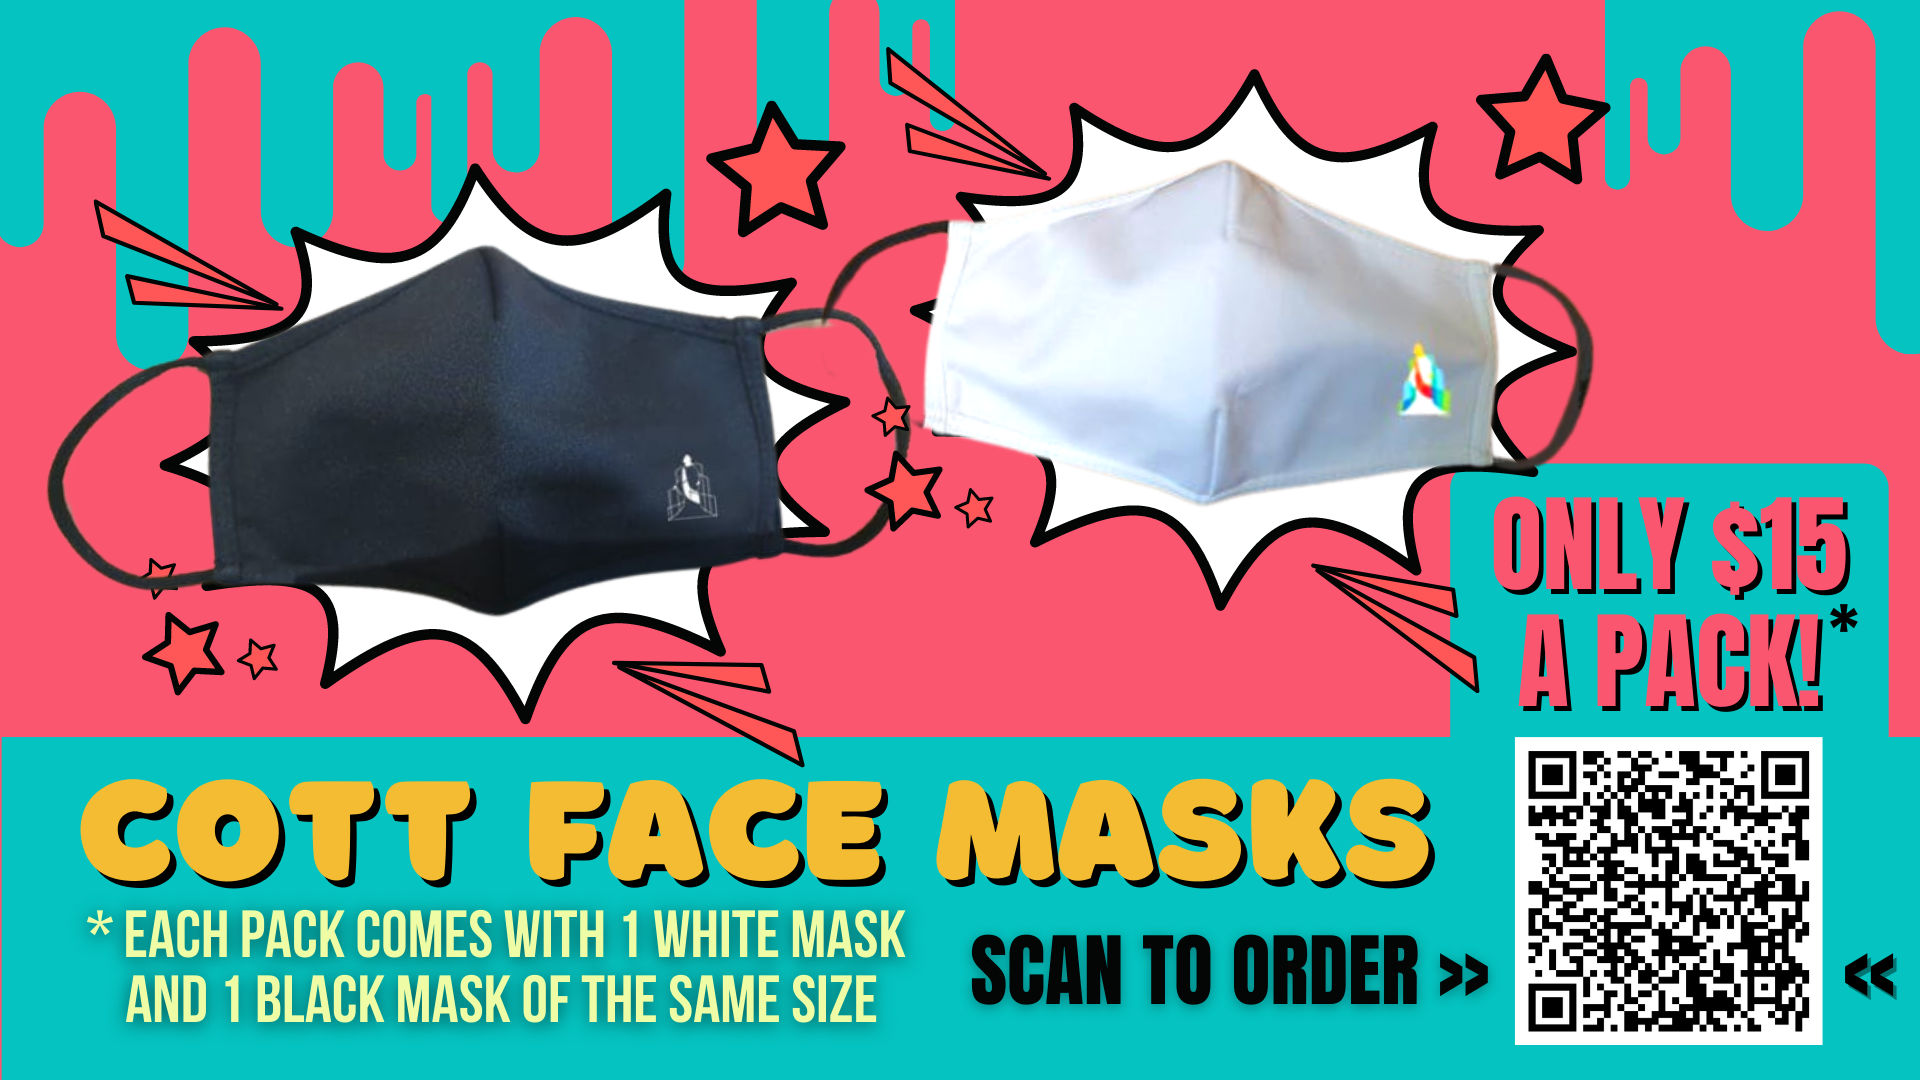 COTT Face Masks